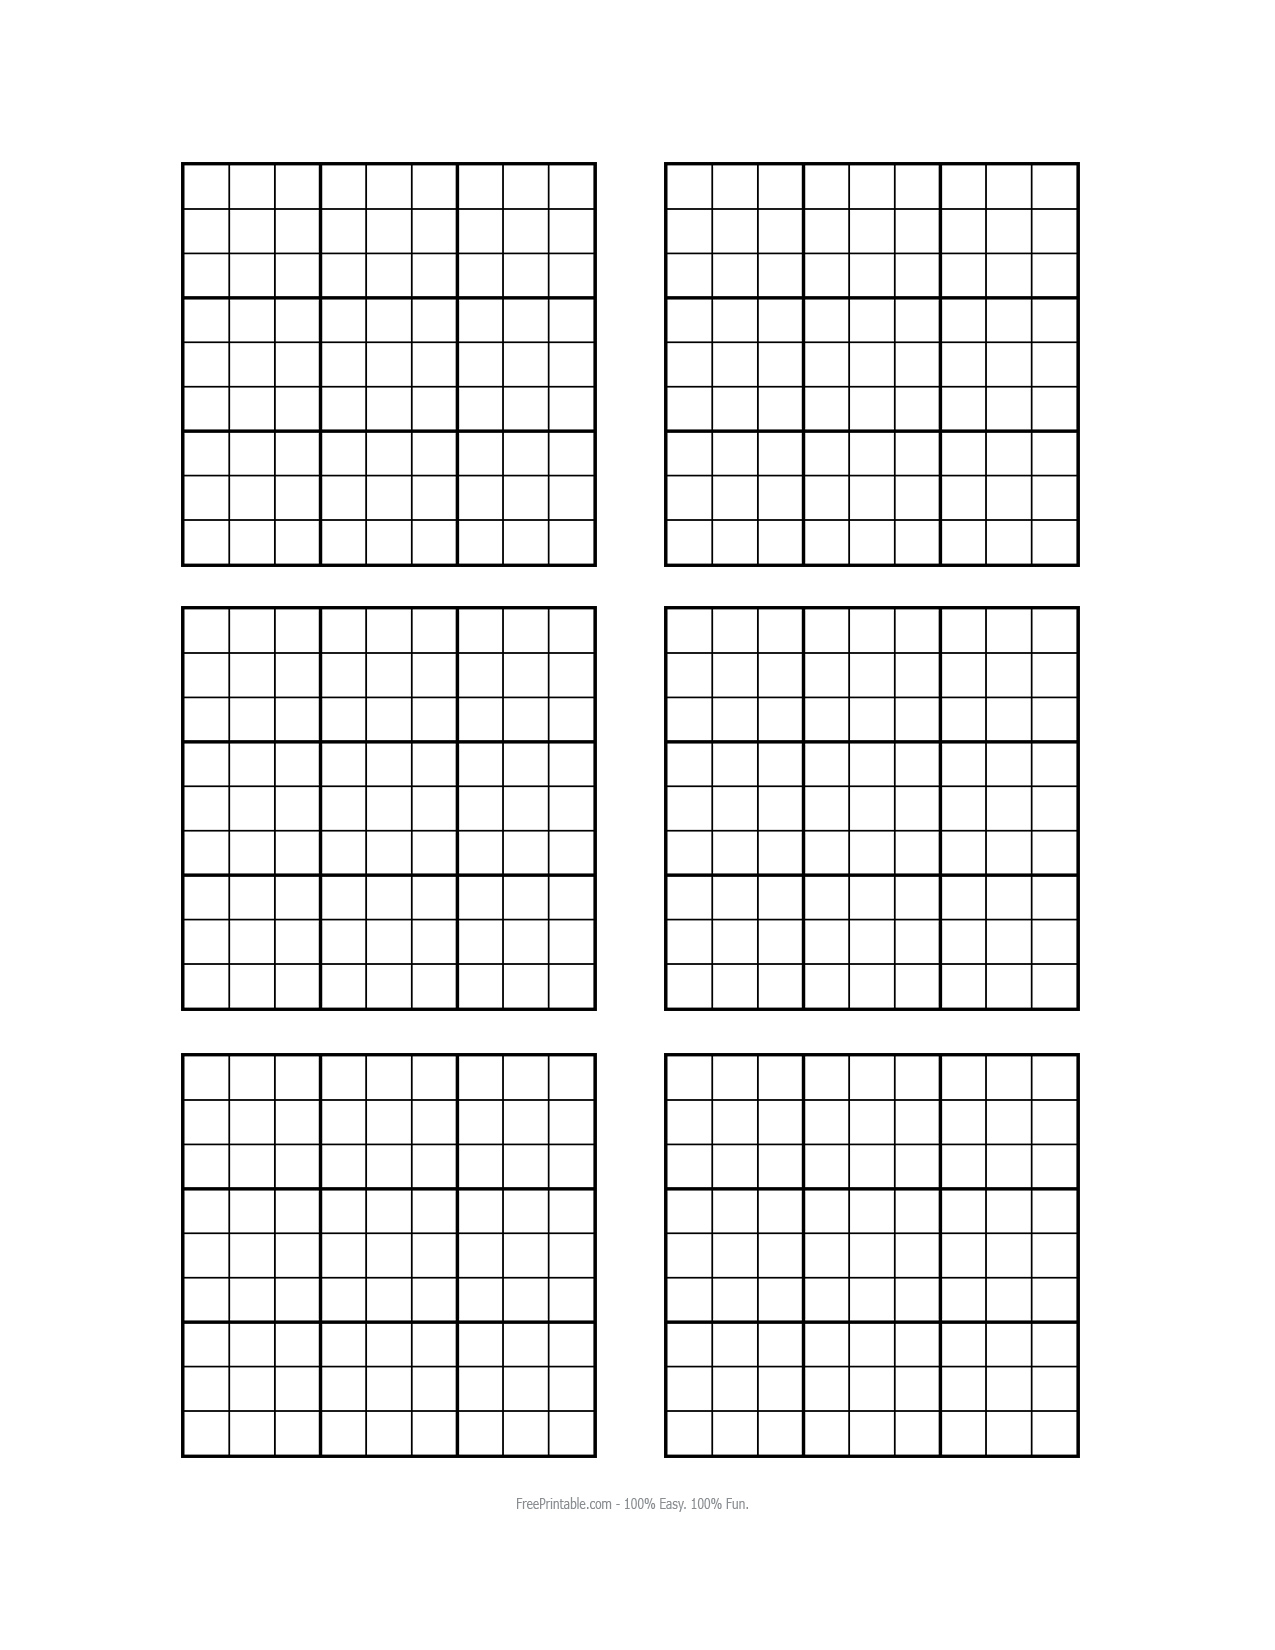 Remarkable image throughout blank sudoku grid printable